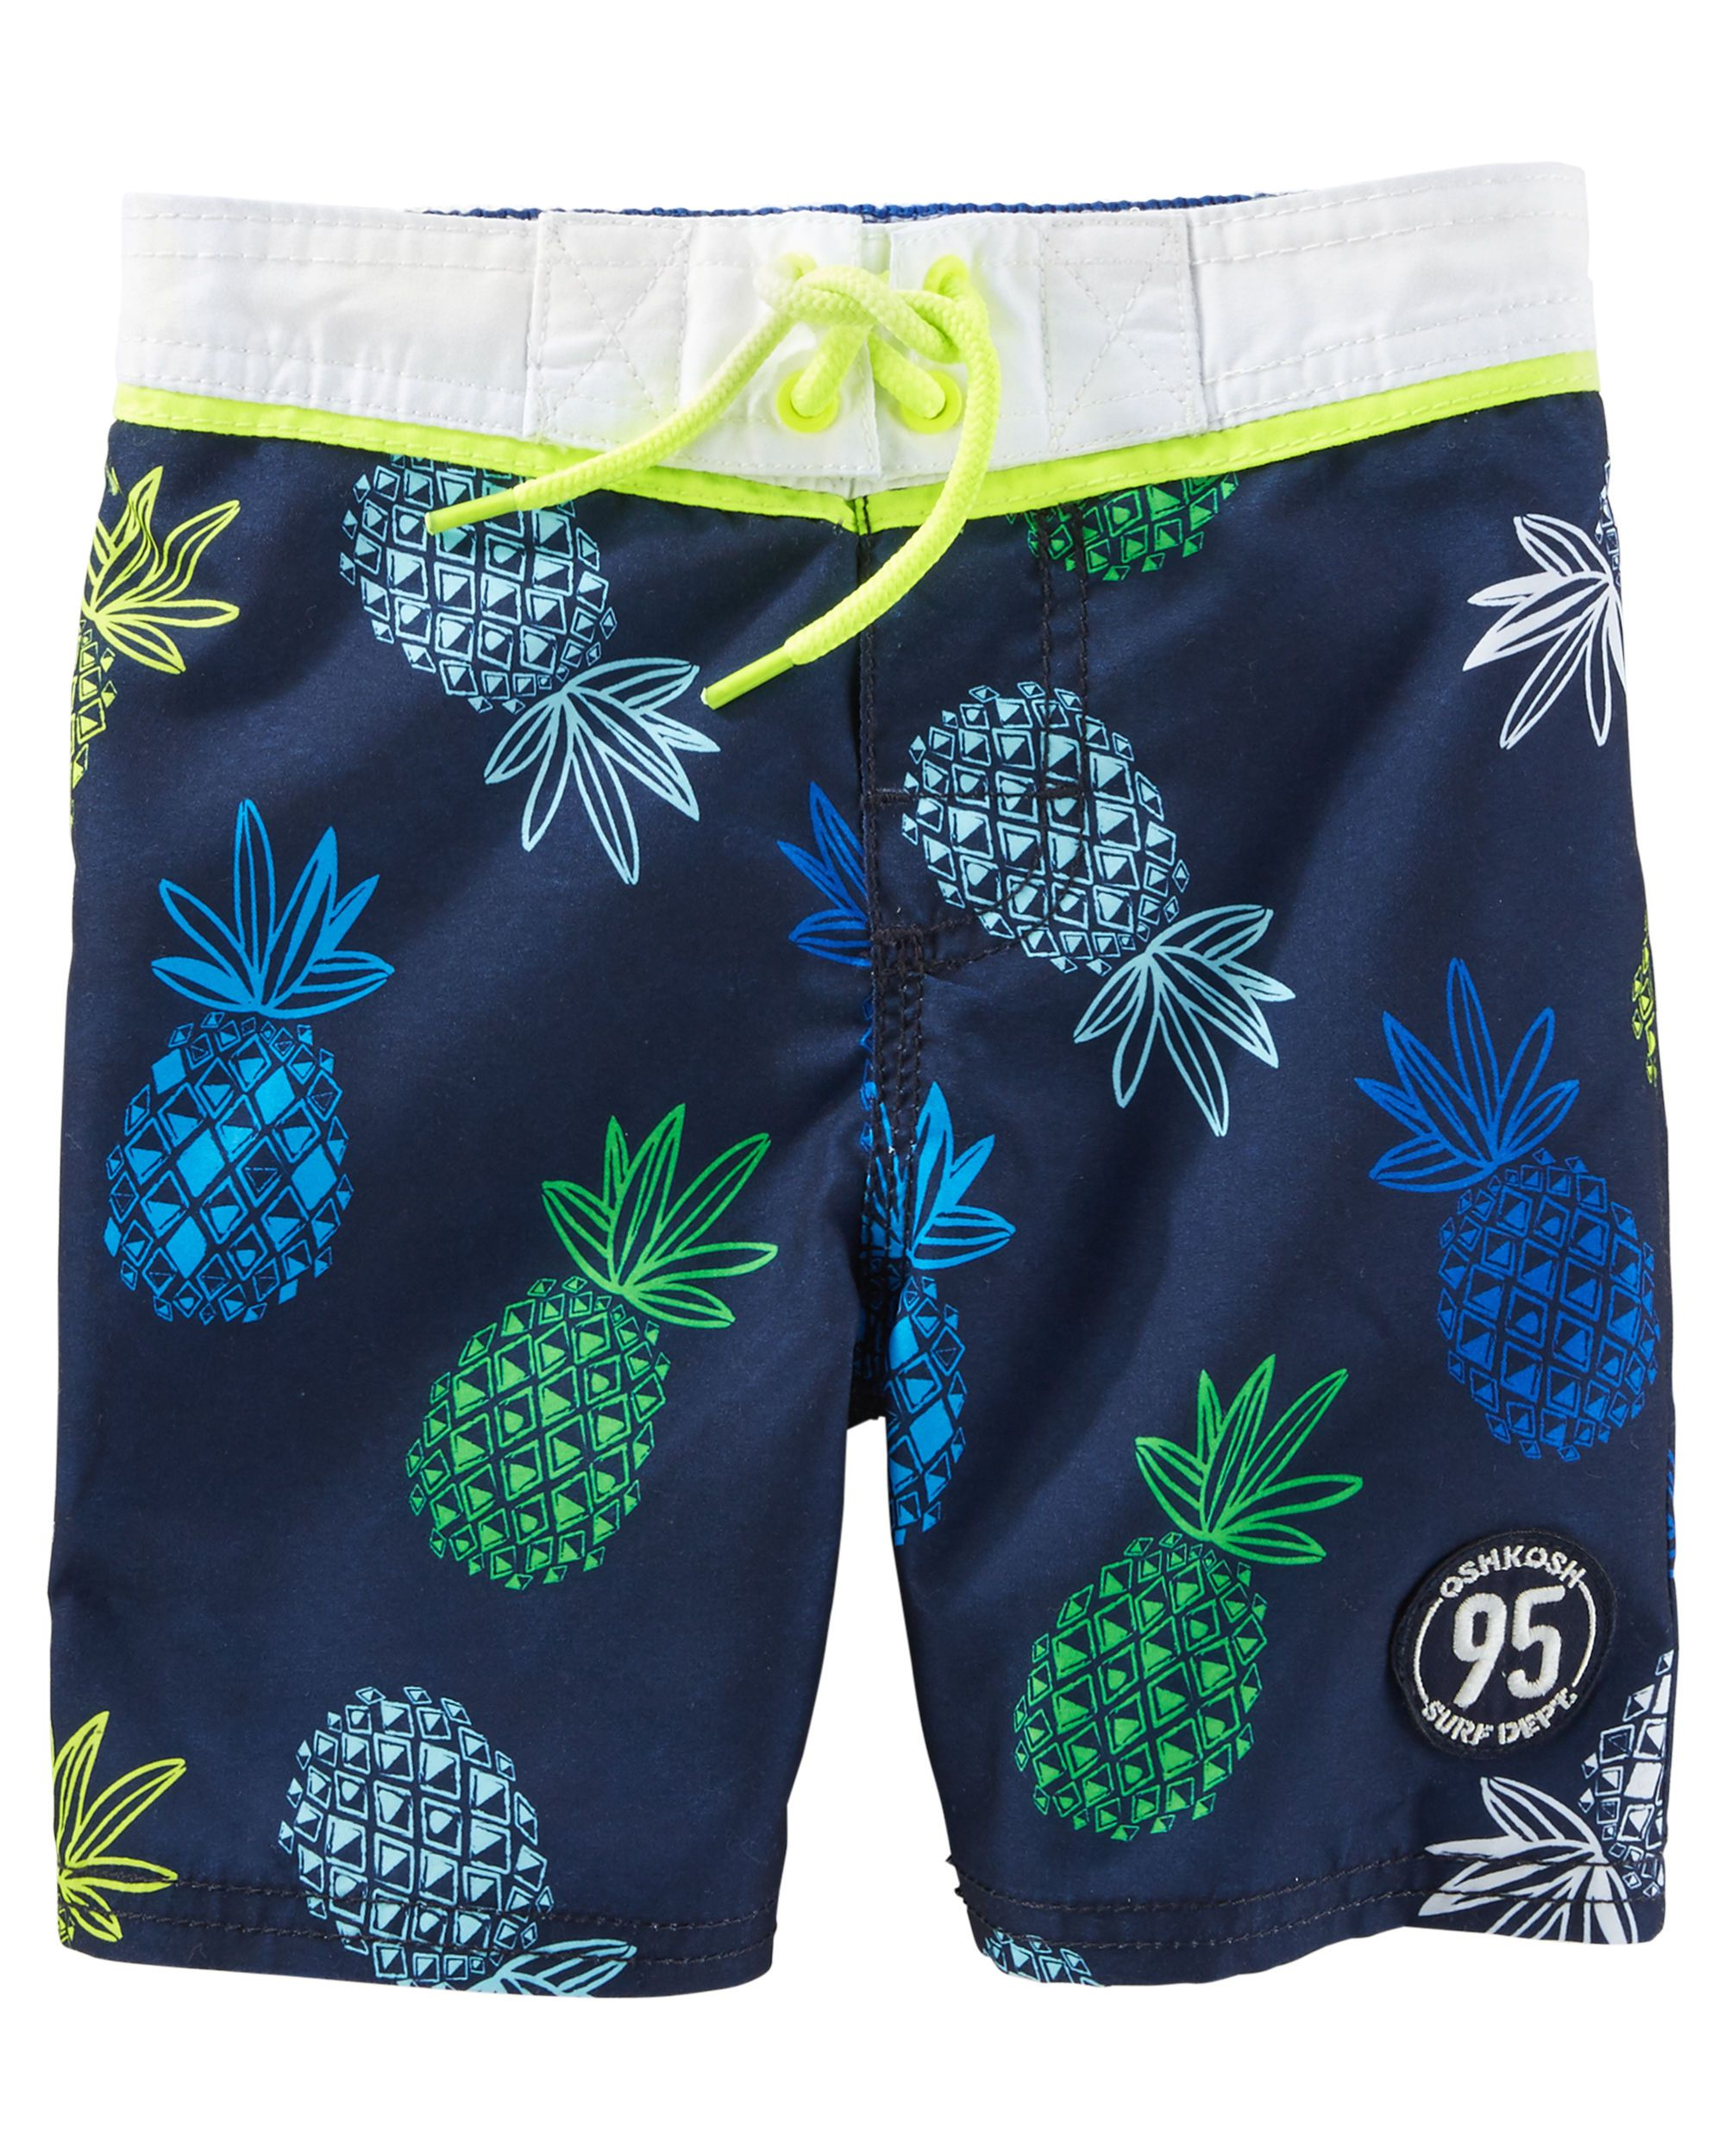 e911e78097a Kid Boy OshKosh Pineapple Print Swim Trunks from OshKosh B gosh. Shop  clothing   accessories from a trusted name in kids